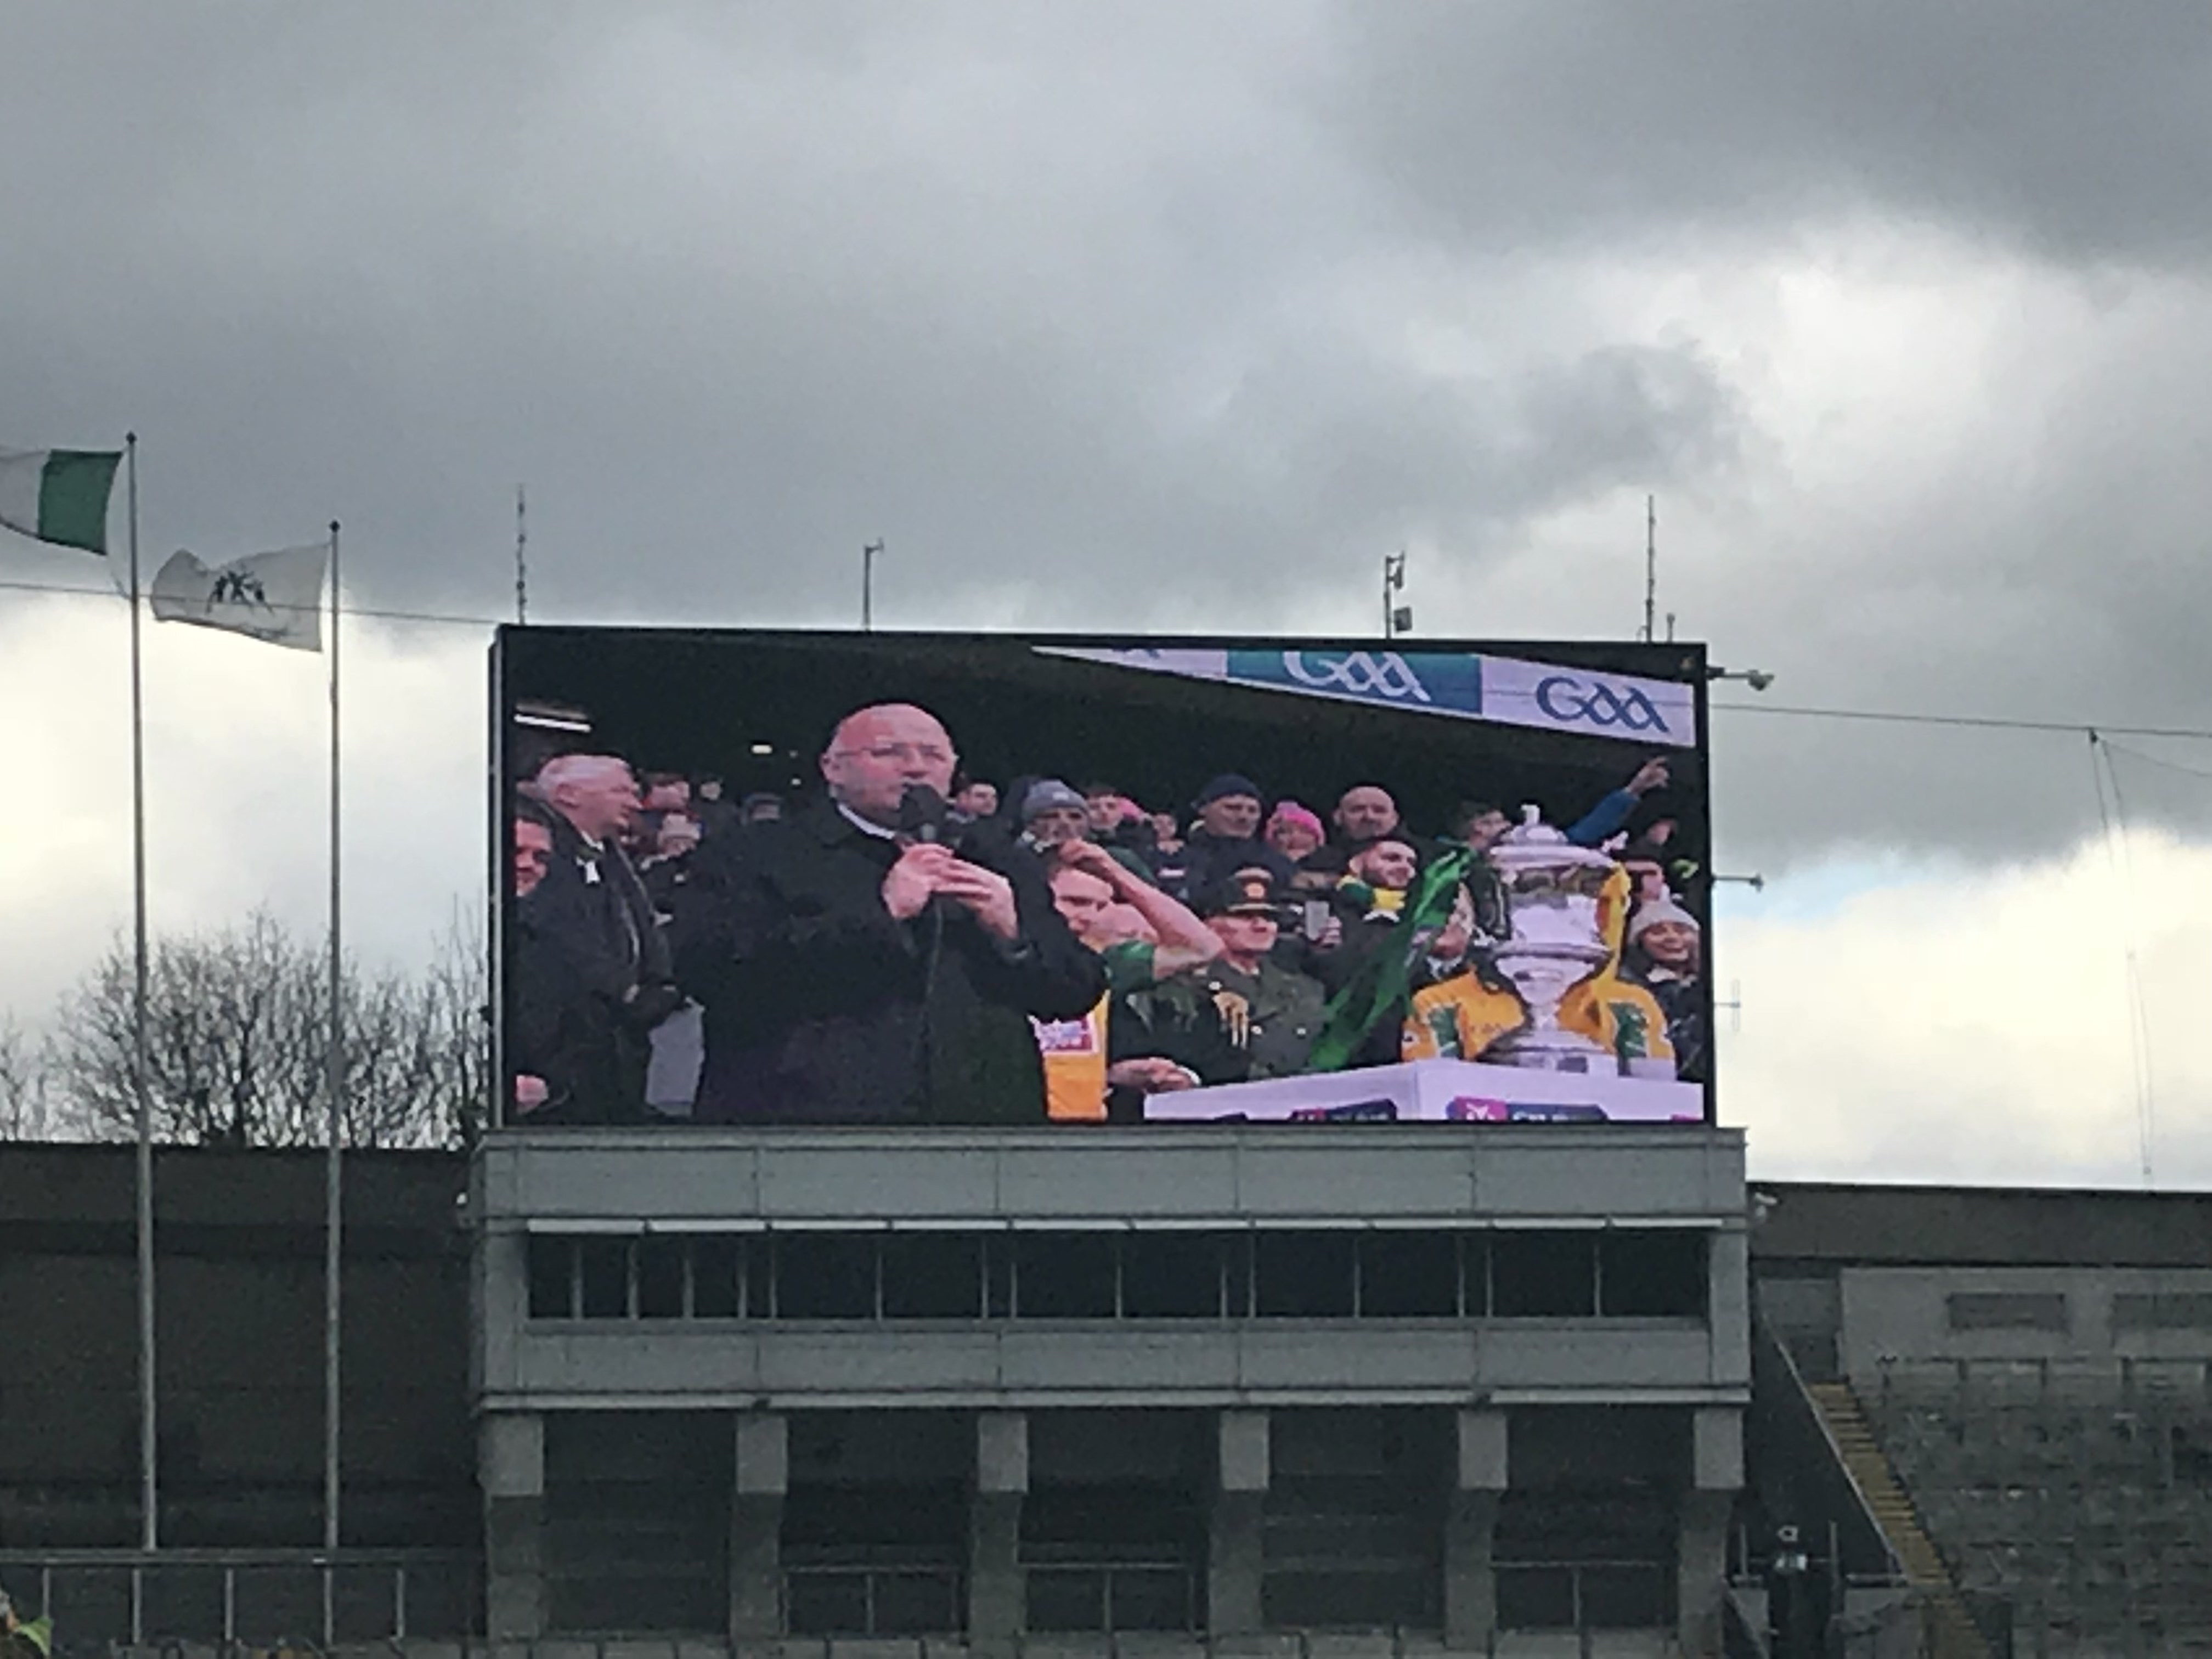 CAPAStudyAbroad_Dublin_Spring2018_From Brandon Mooney - Irish President Michael D Higgins Speaking at Croke Park.jpeg